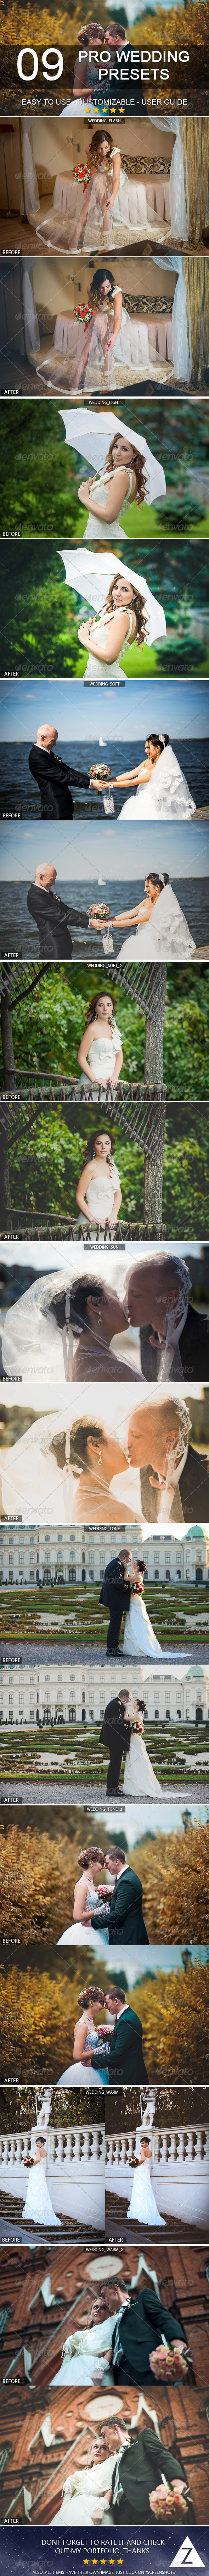 GraphicRiver 9 Pro Wedding Presets 6372104